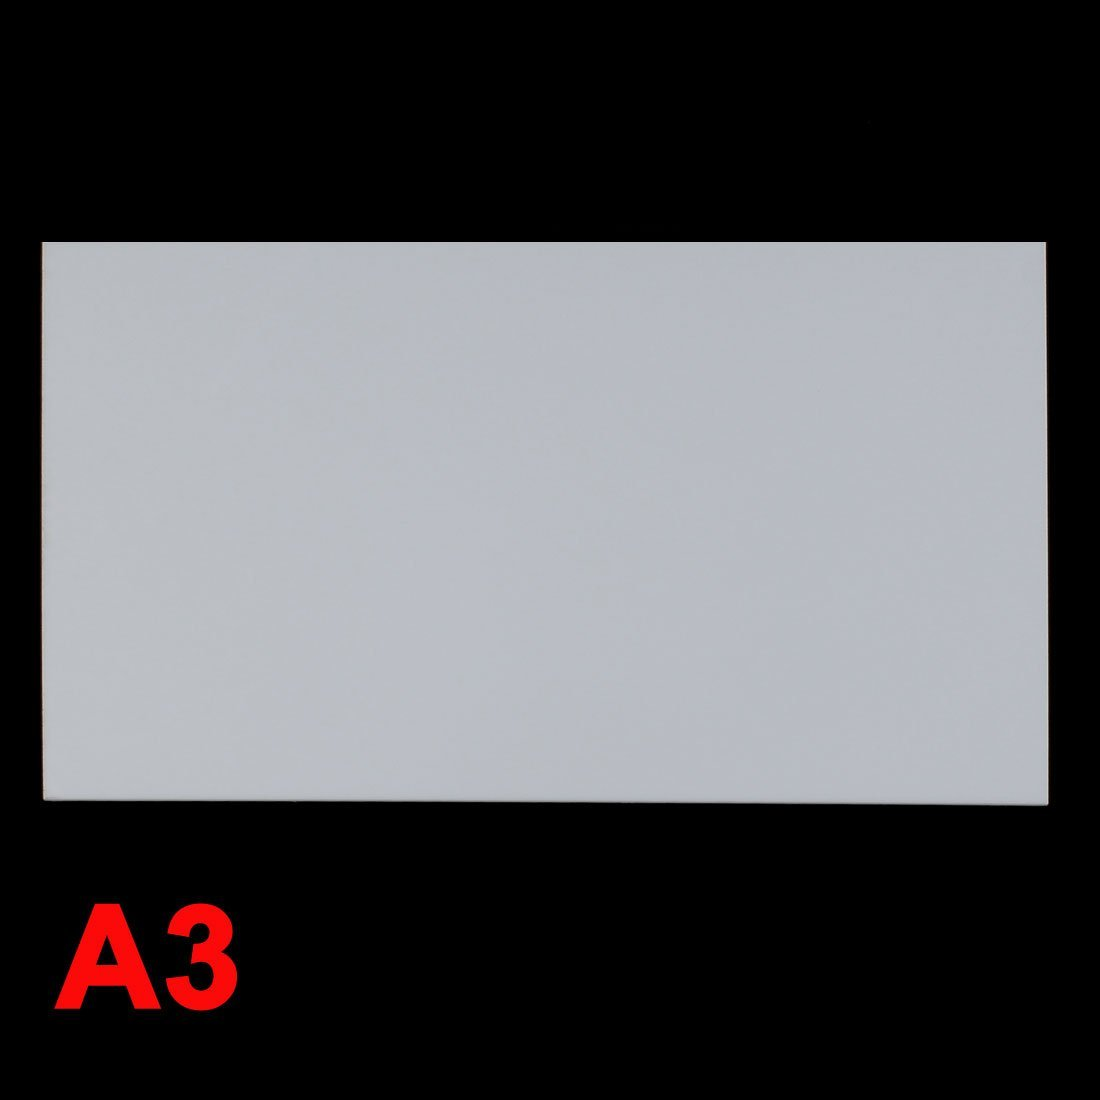 3mm White Plastic Acrylic Plexiglass Perspex Sheet A3 Size 297mmx420mm DealMux DLM-B00YBMRDYY